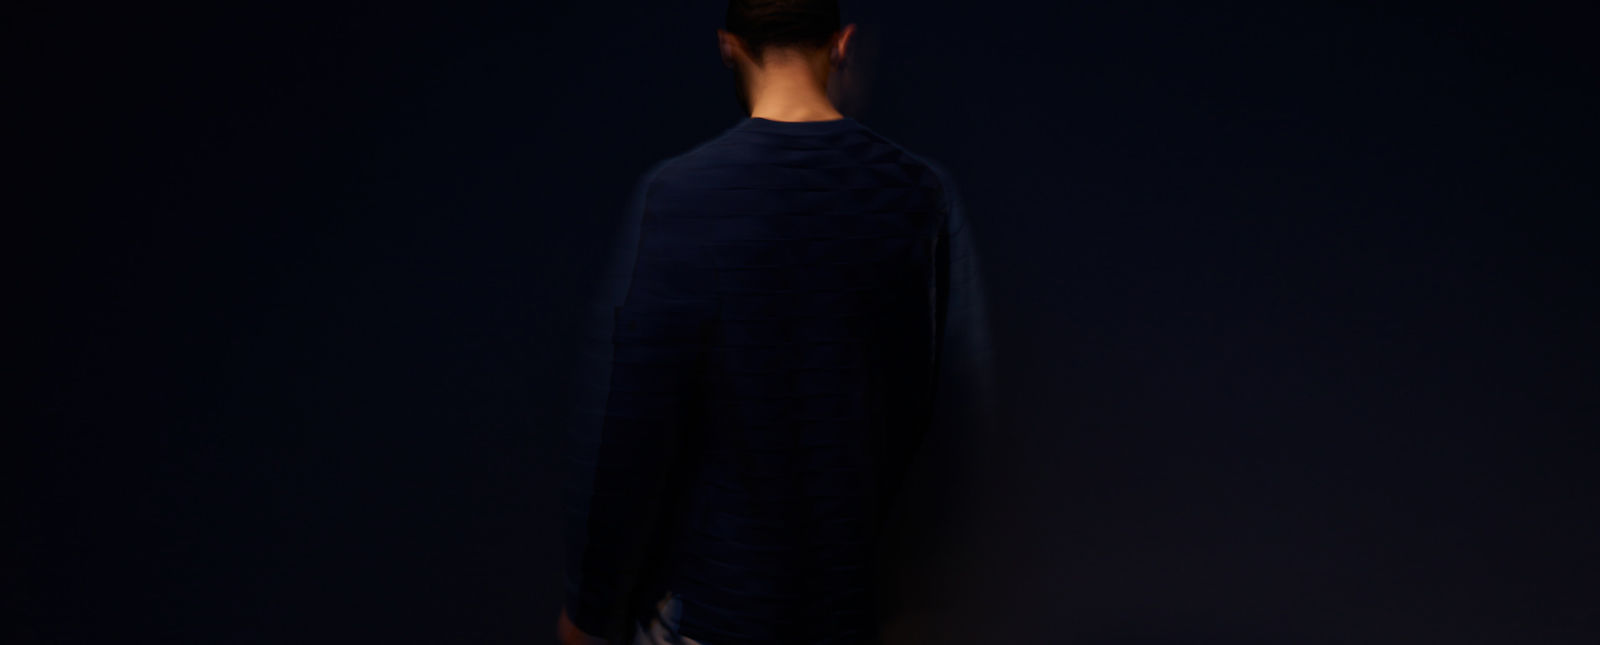 View of a model from the back wearing a dark blue crew neck sweater against a dark blue background